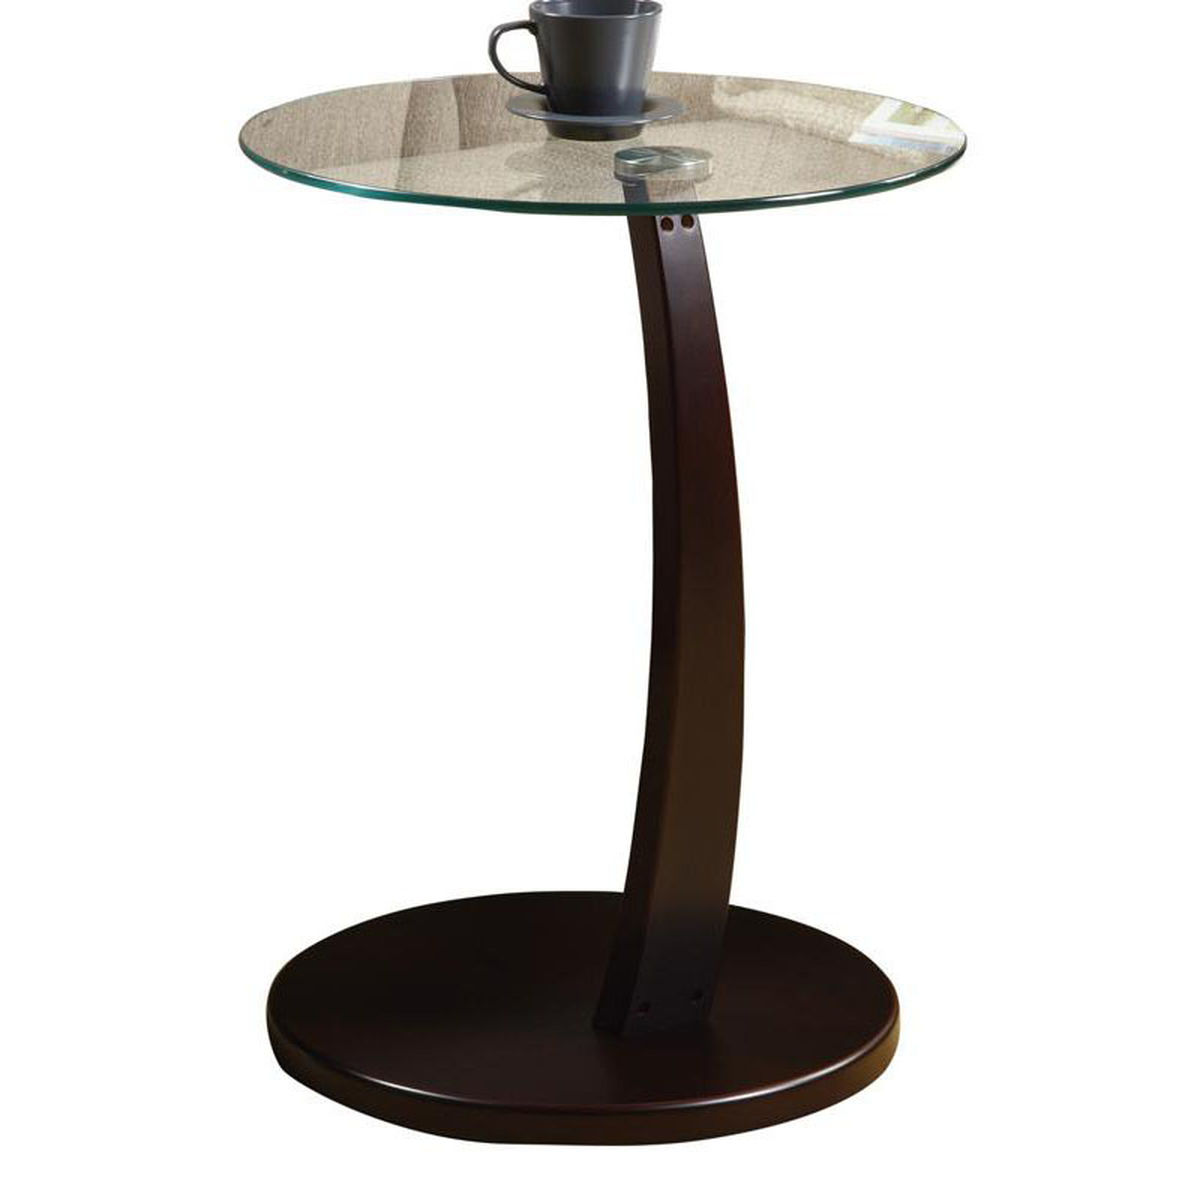 cappuccino glass top accent table bizchair monarch specialties msp main umbrella our bentwood slide under sofa with tempered round metal tray bbq grill side small folding sides